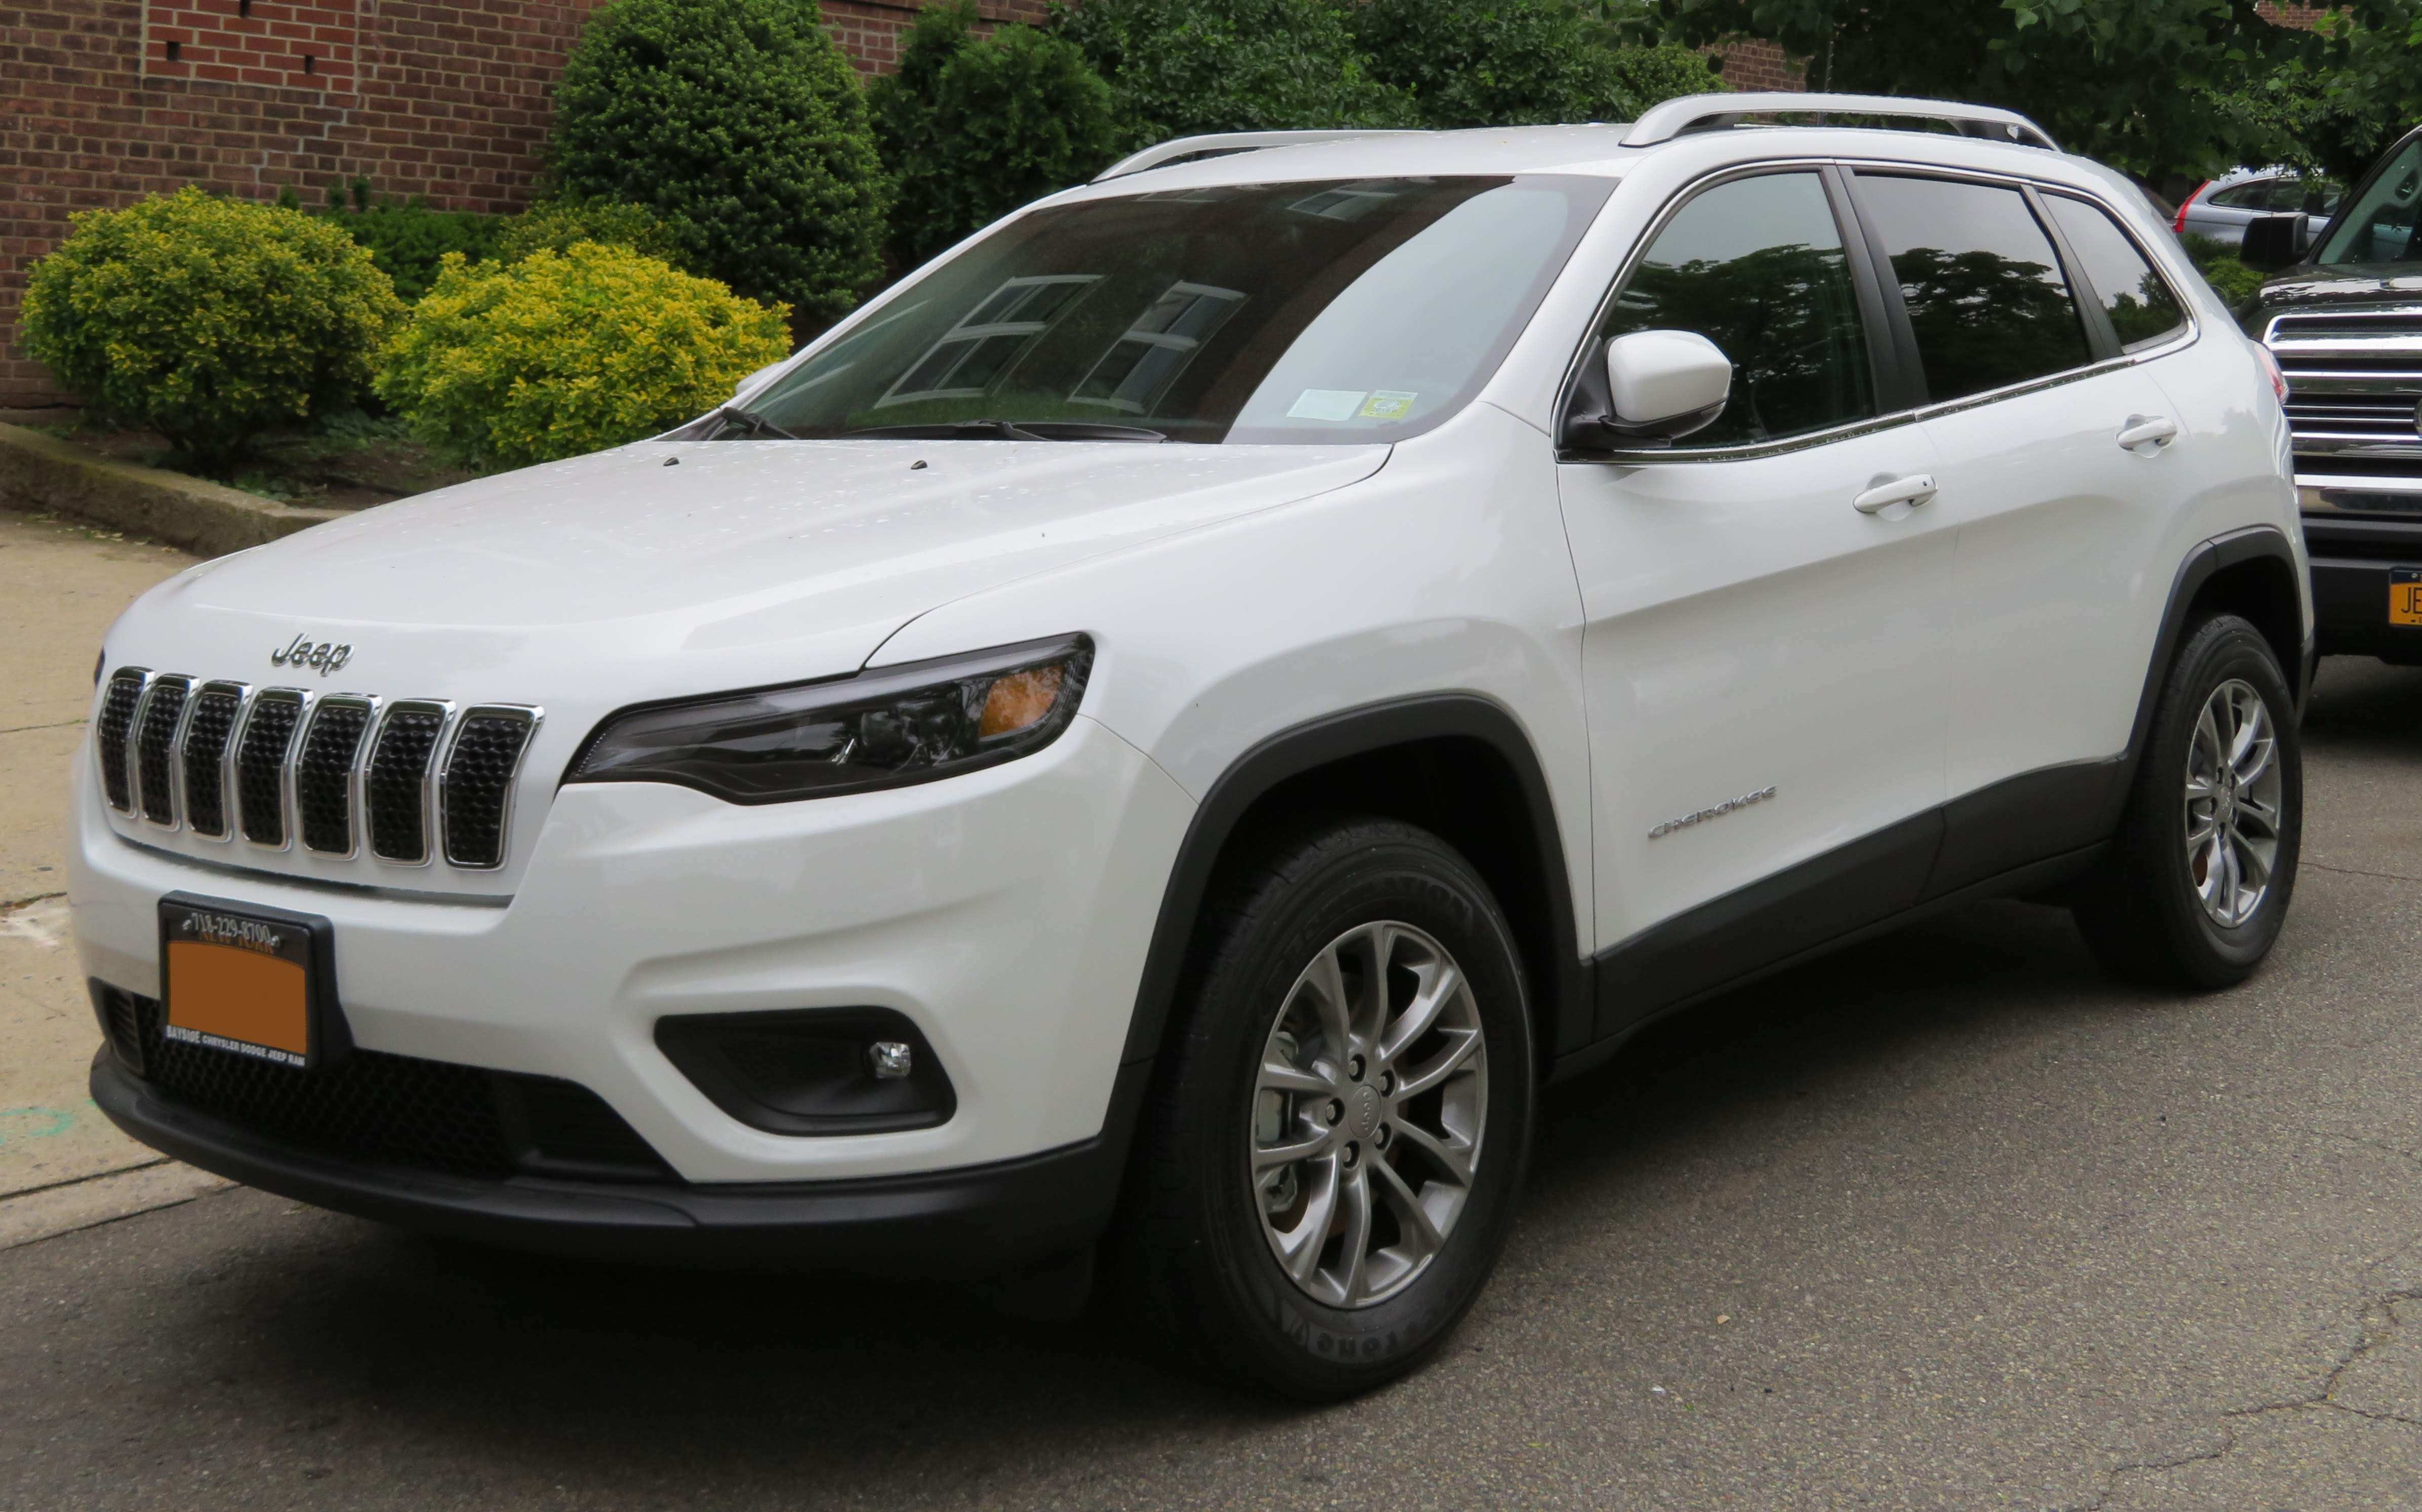 48 Concept of Difference Between 2018 And 2019 Jeep Cherokee Release Date History by Difference Between 2018 And 2019 Jeep Cherokee Release Date